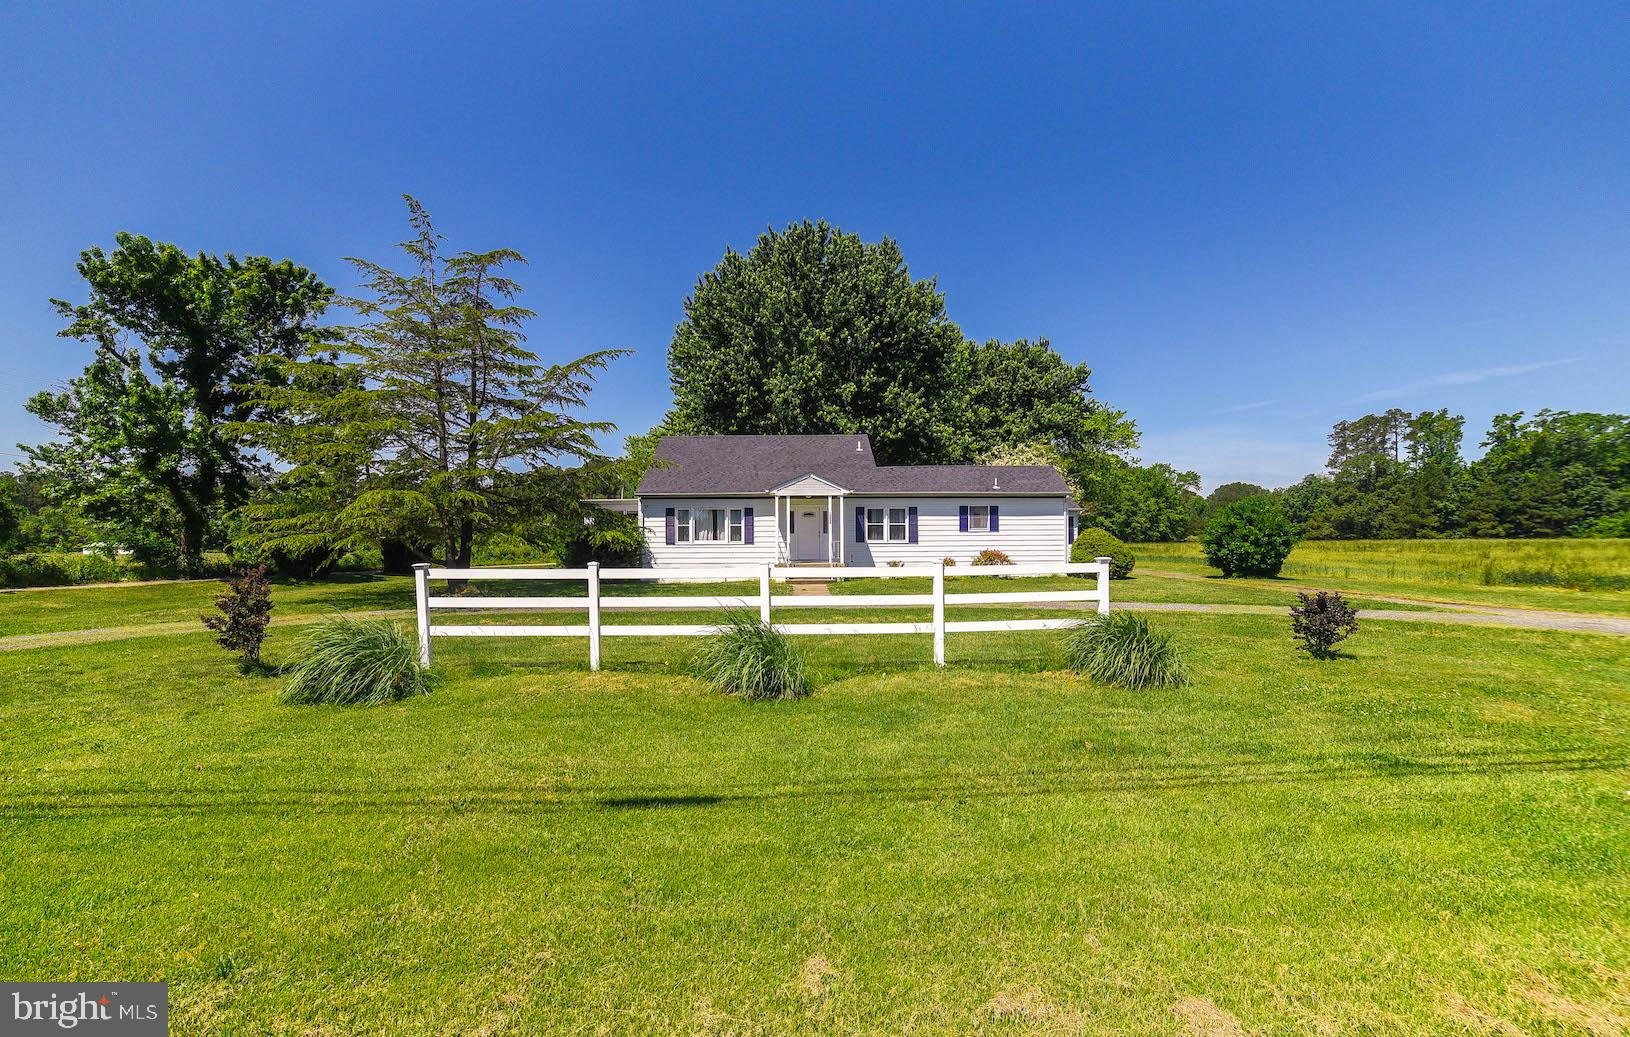 13235 POINT LOOKOUT ROAD, RIDGE, MD 20680